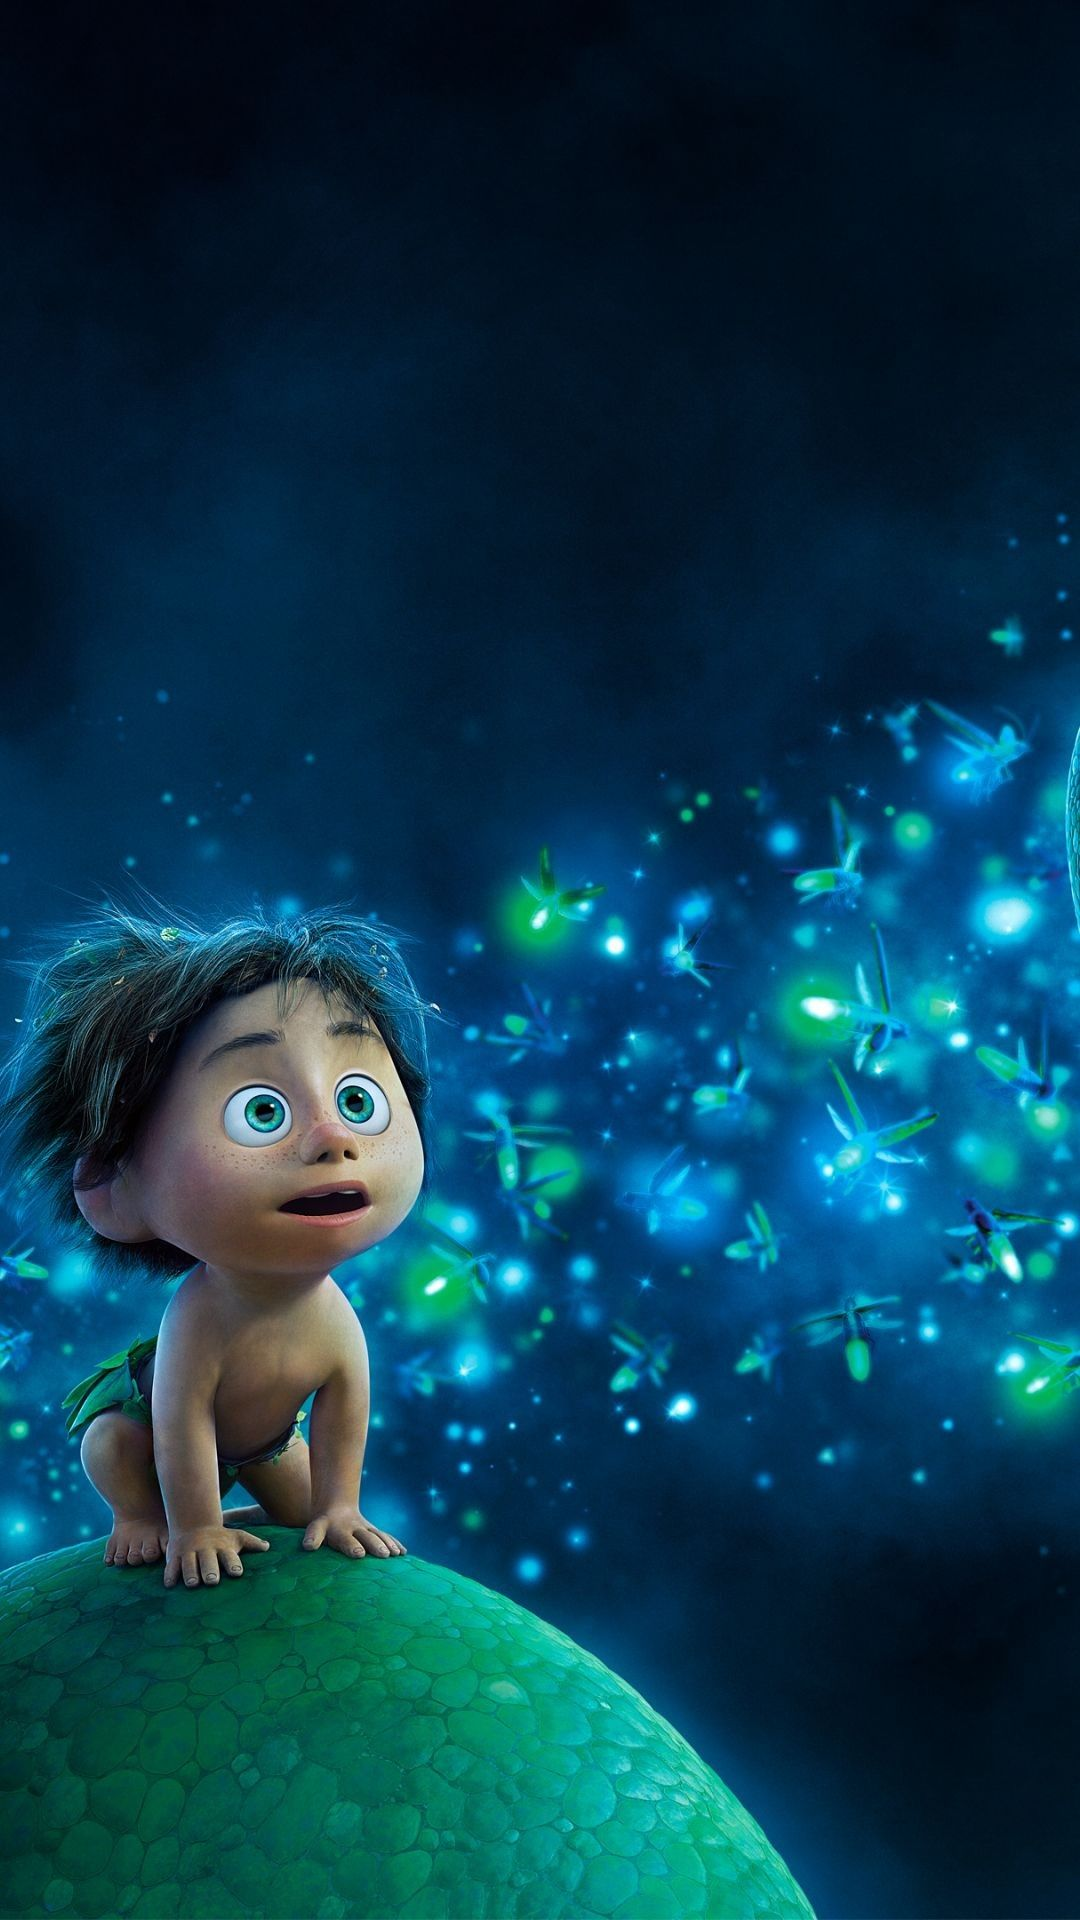 Pin by Maneesh on wallpapers in 2020 The good dinosaur